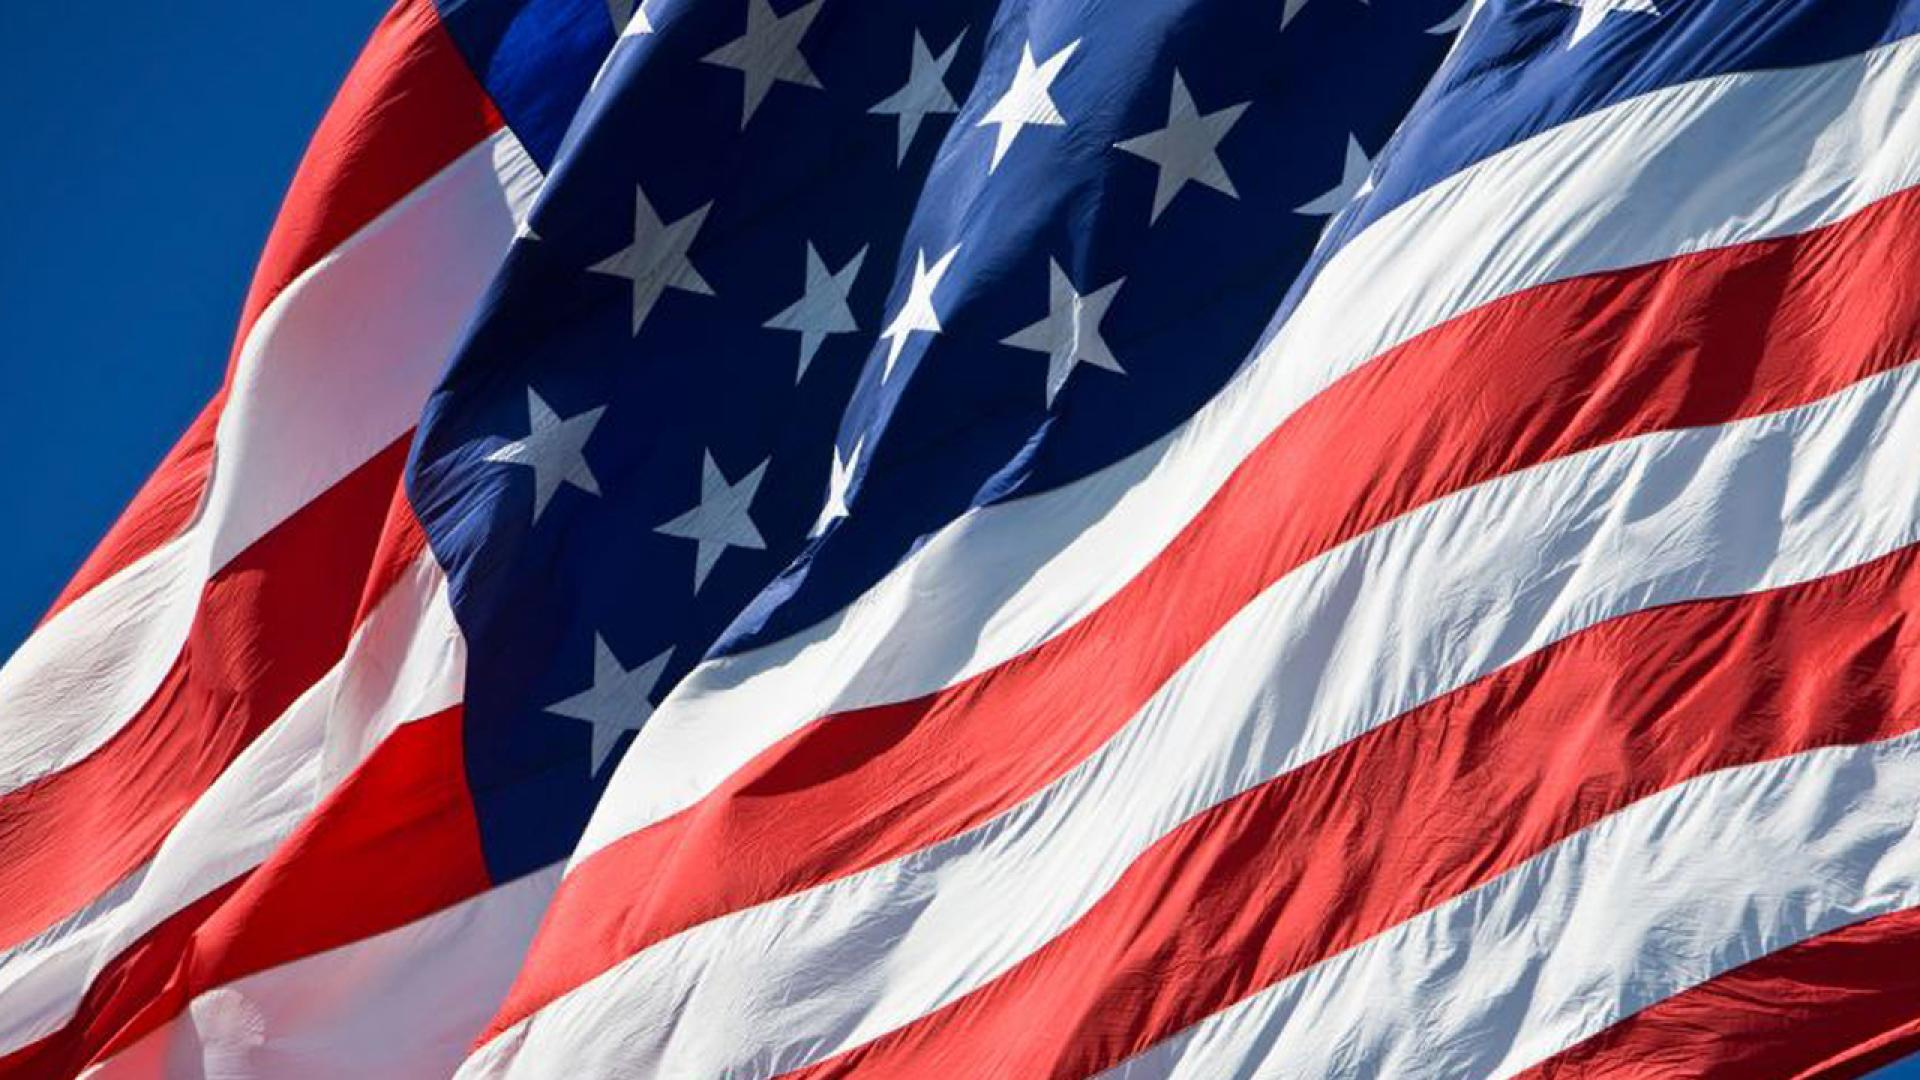 The boy argued with a teacher over standing for the Pledge of Allegiance, police said.